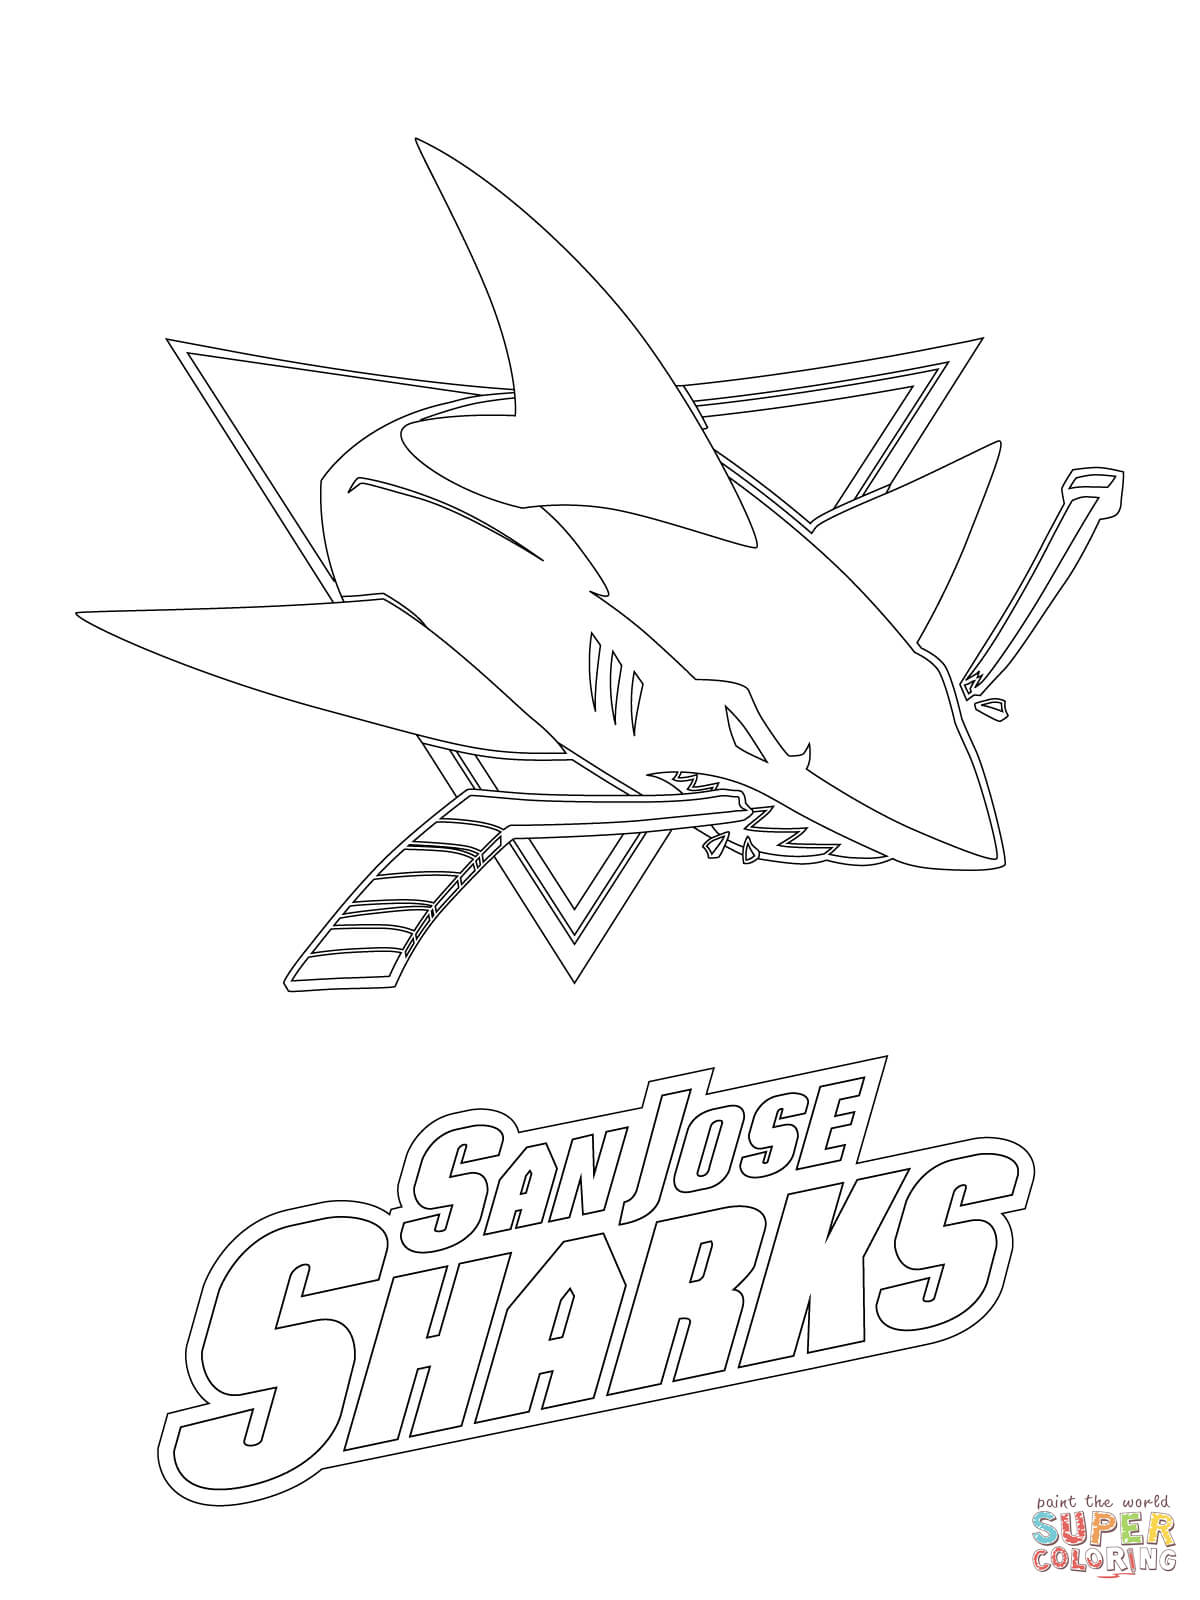 san jose sharks logo coloring page free printable coloring pages